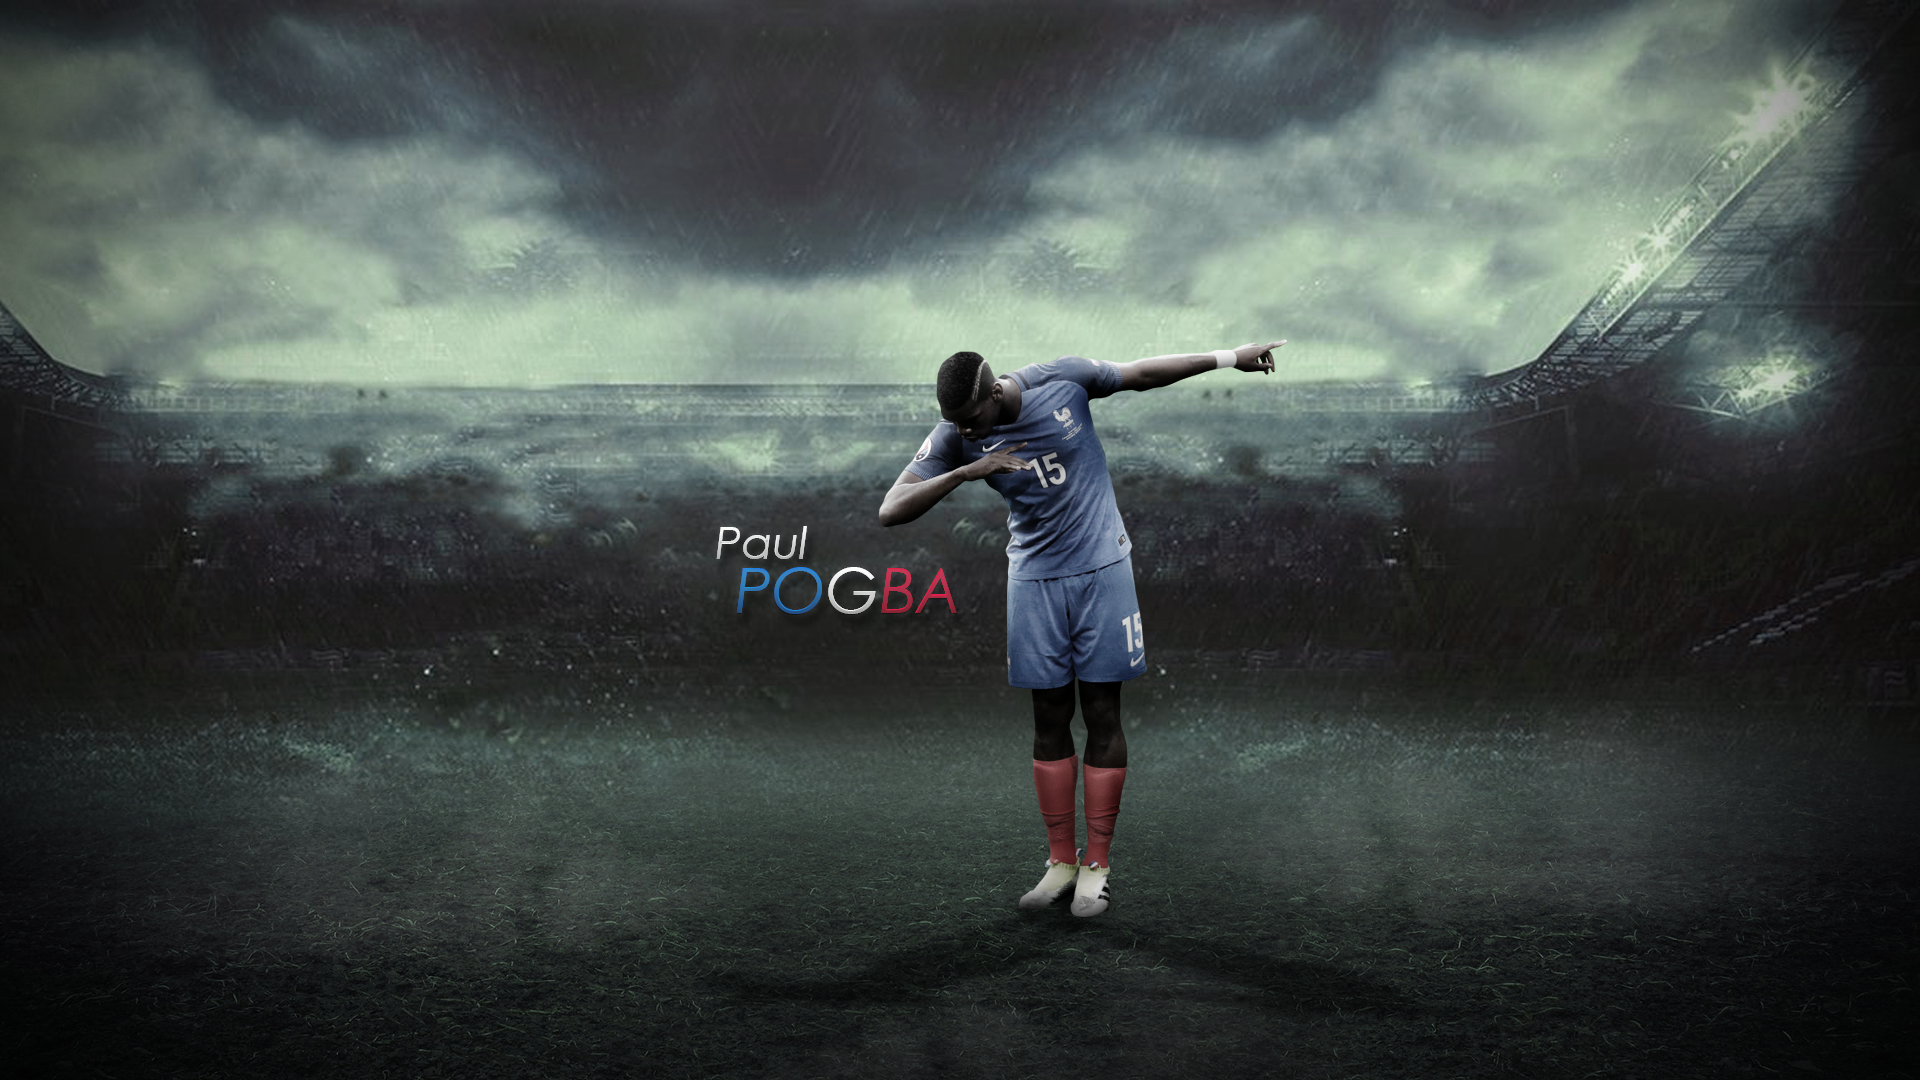 #8 Paul Pogba By TommyniusGFX On DeviantArt